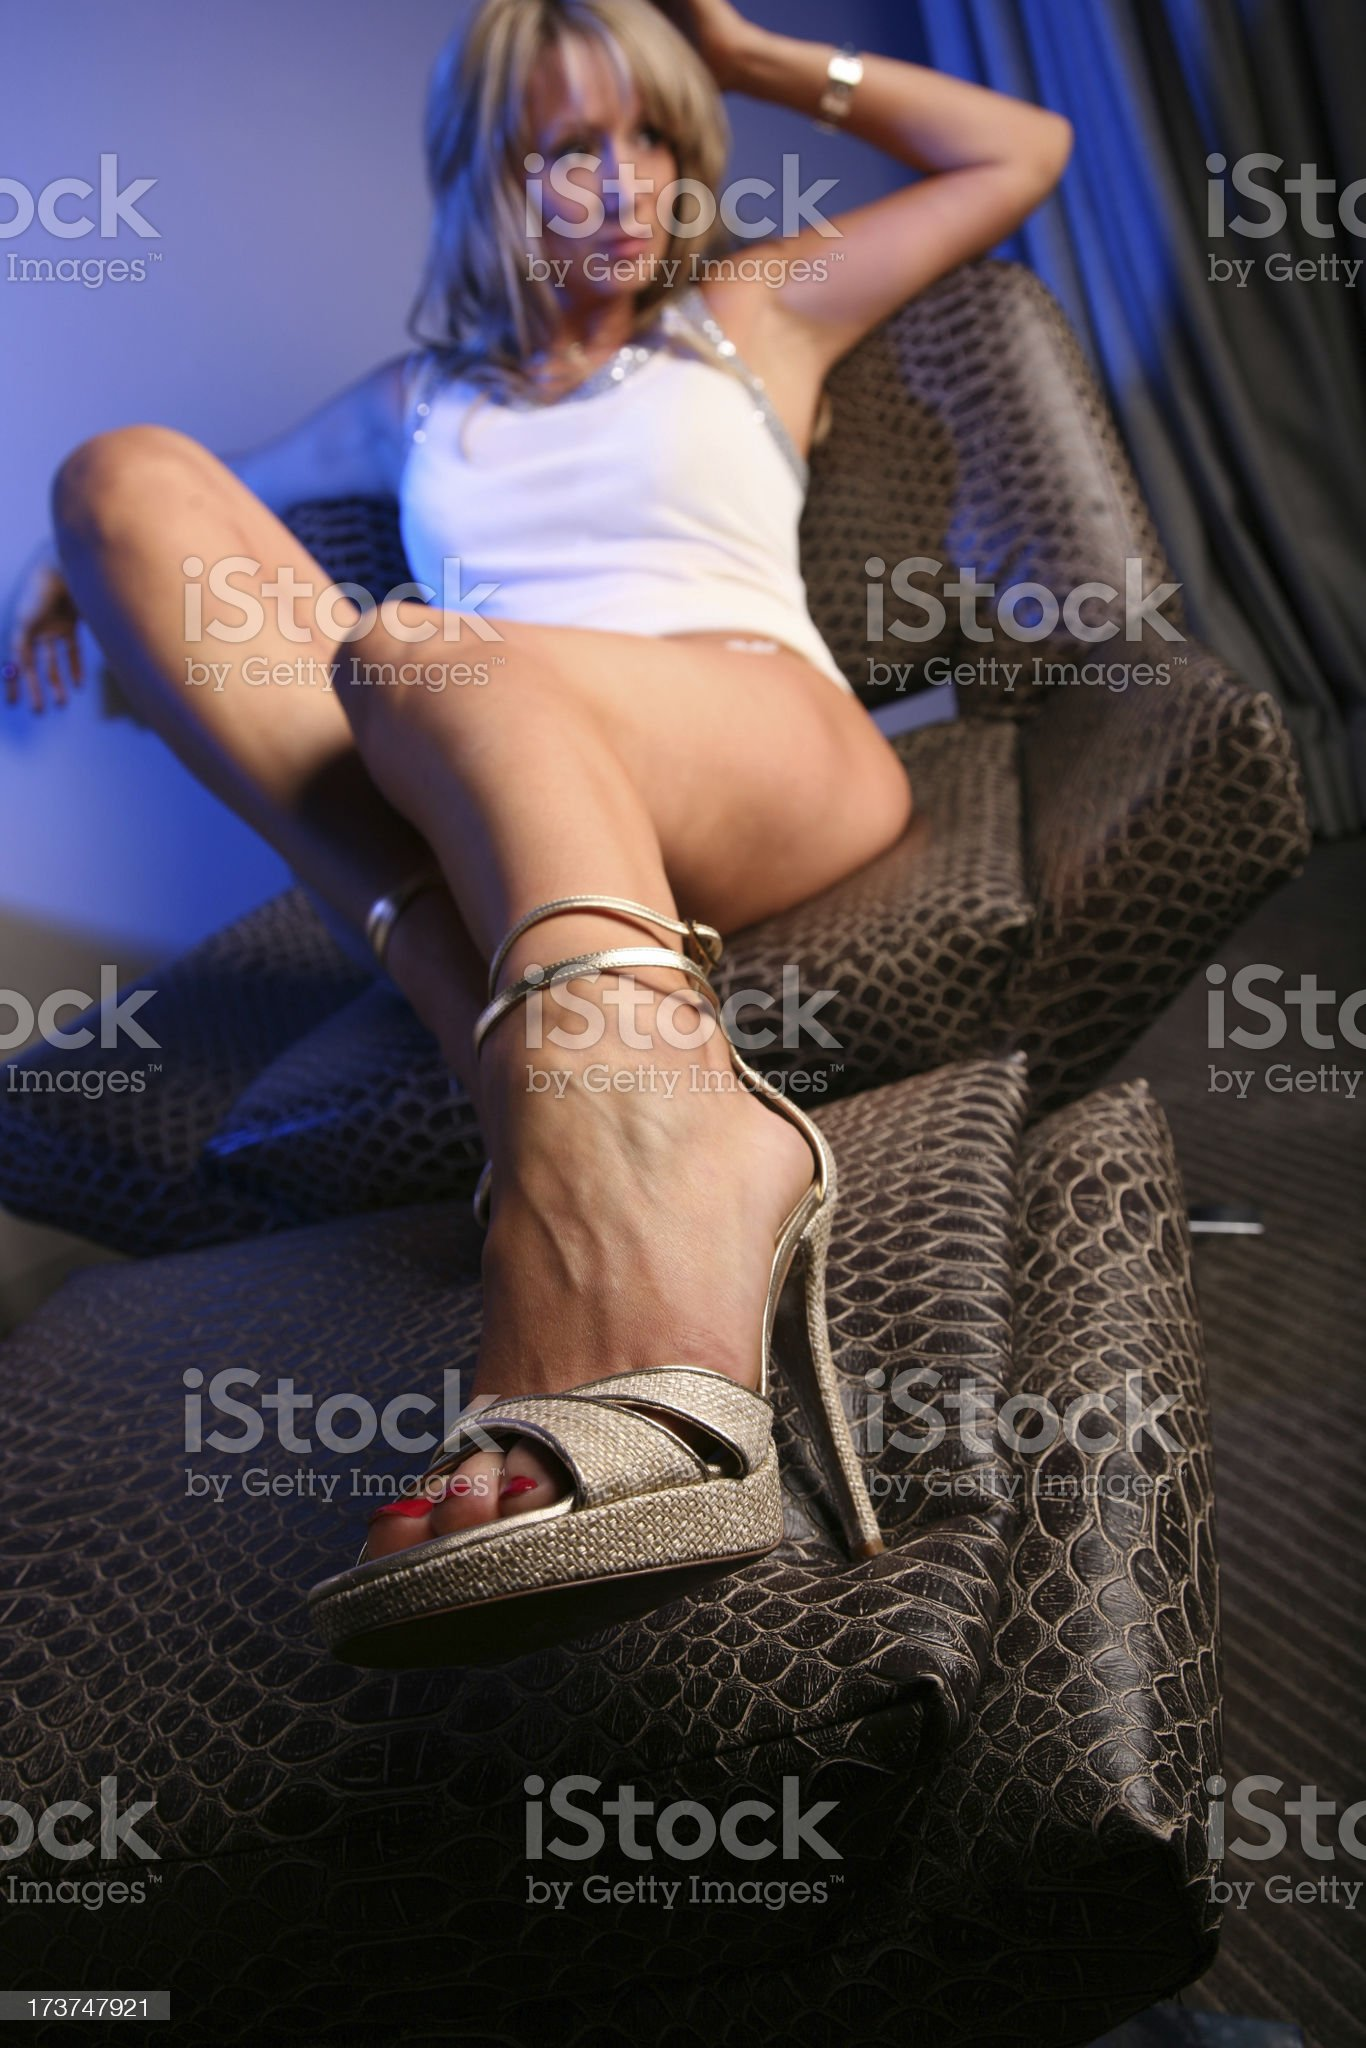 Sexy High Heel Shoes royalty-free stock photo